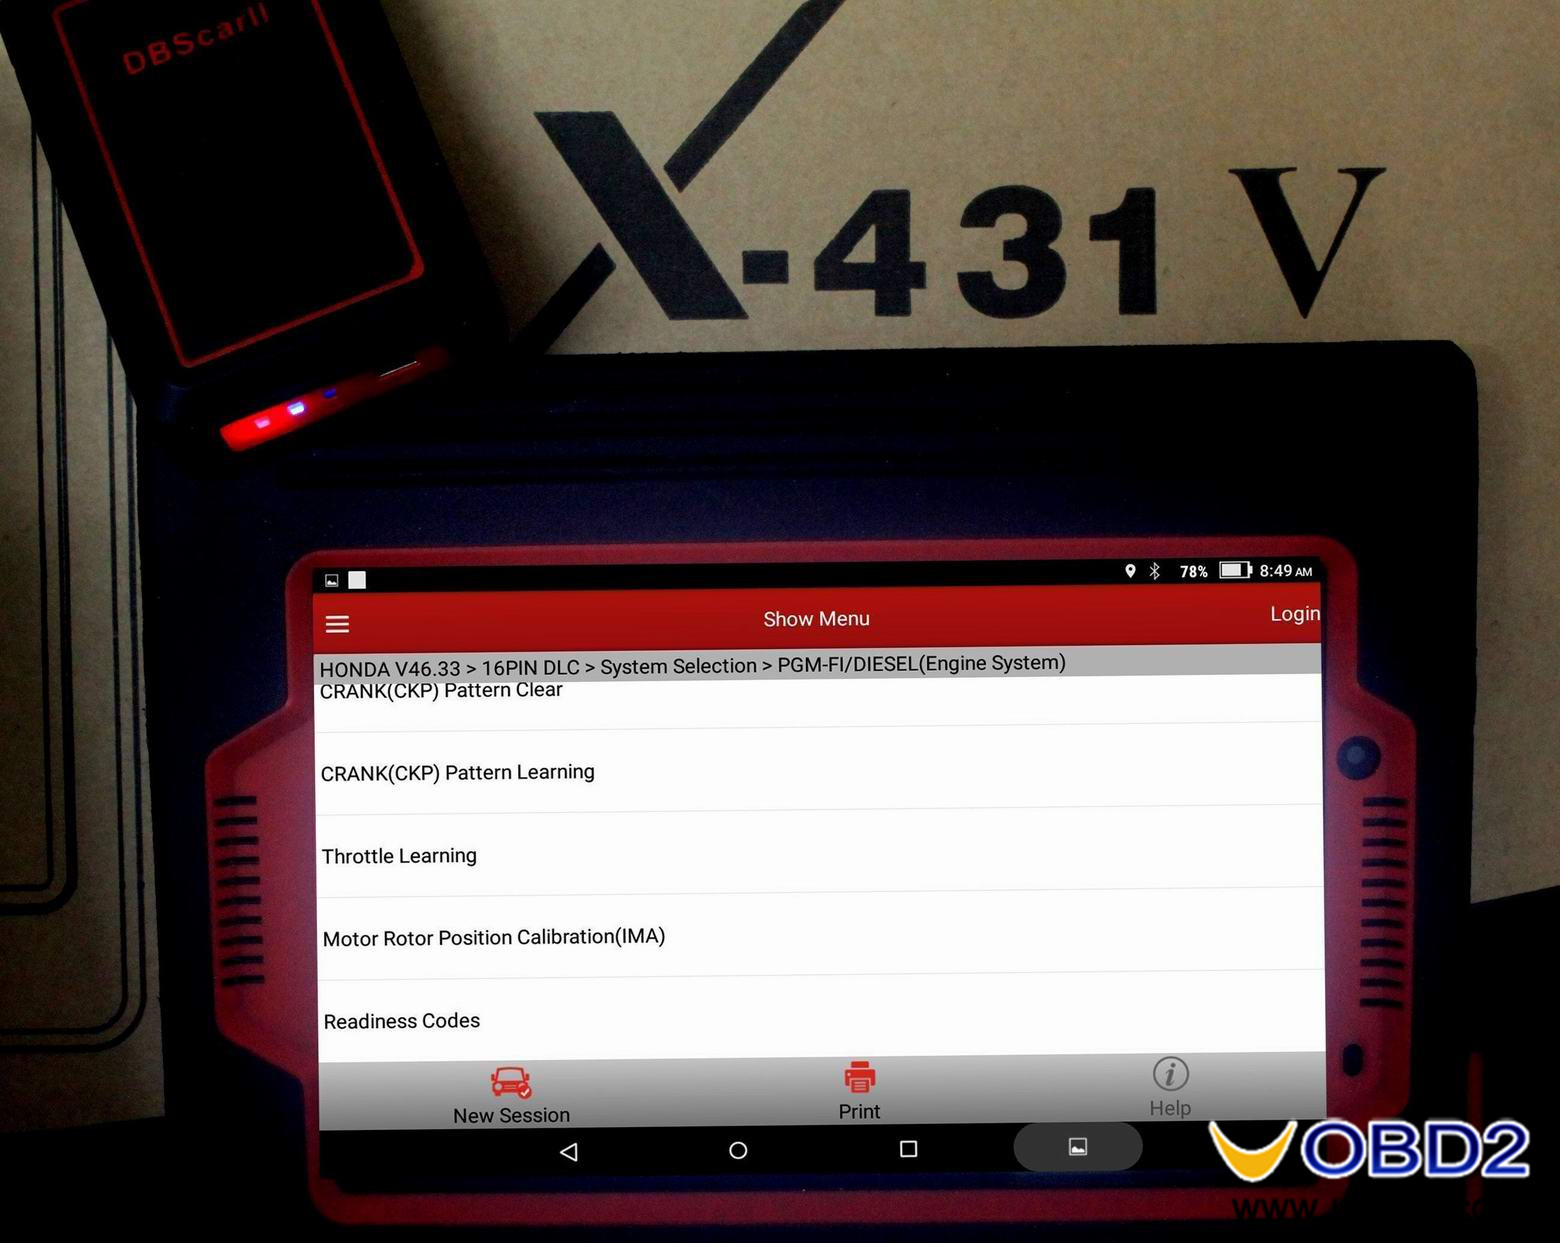 launch-x431-v-8-inch-diagnostic-tablet-honda-2